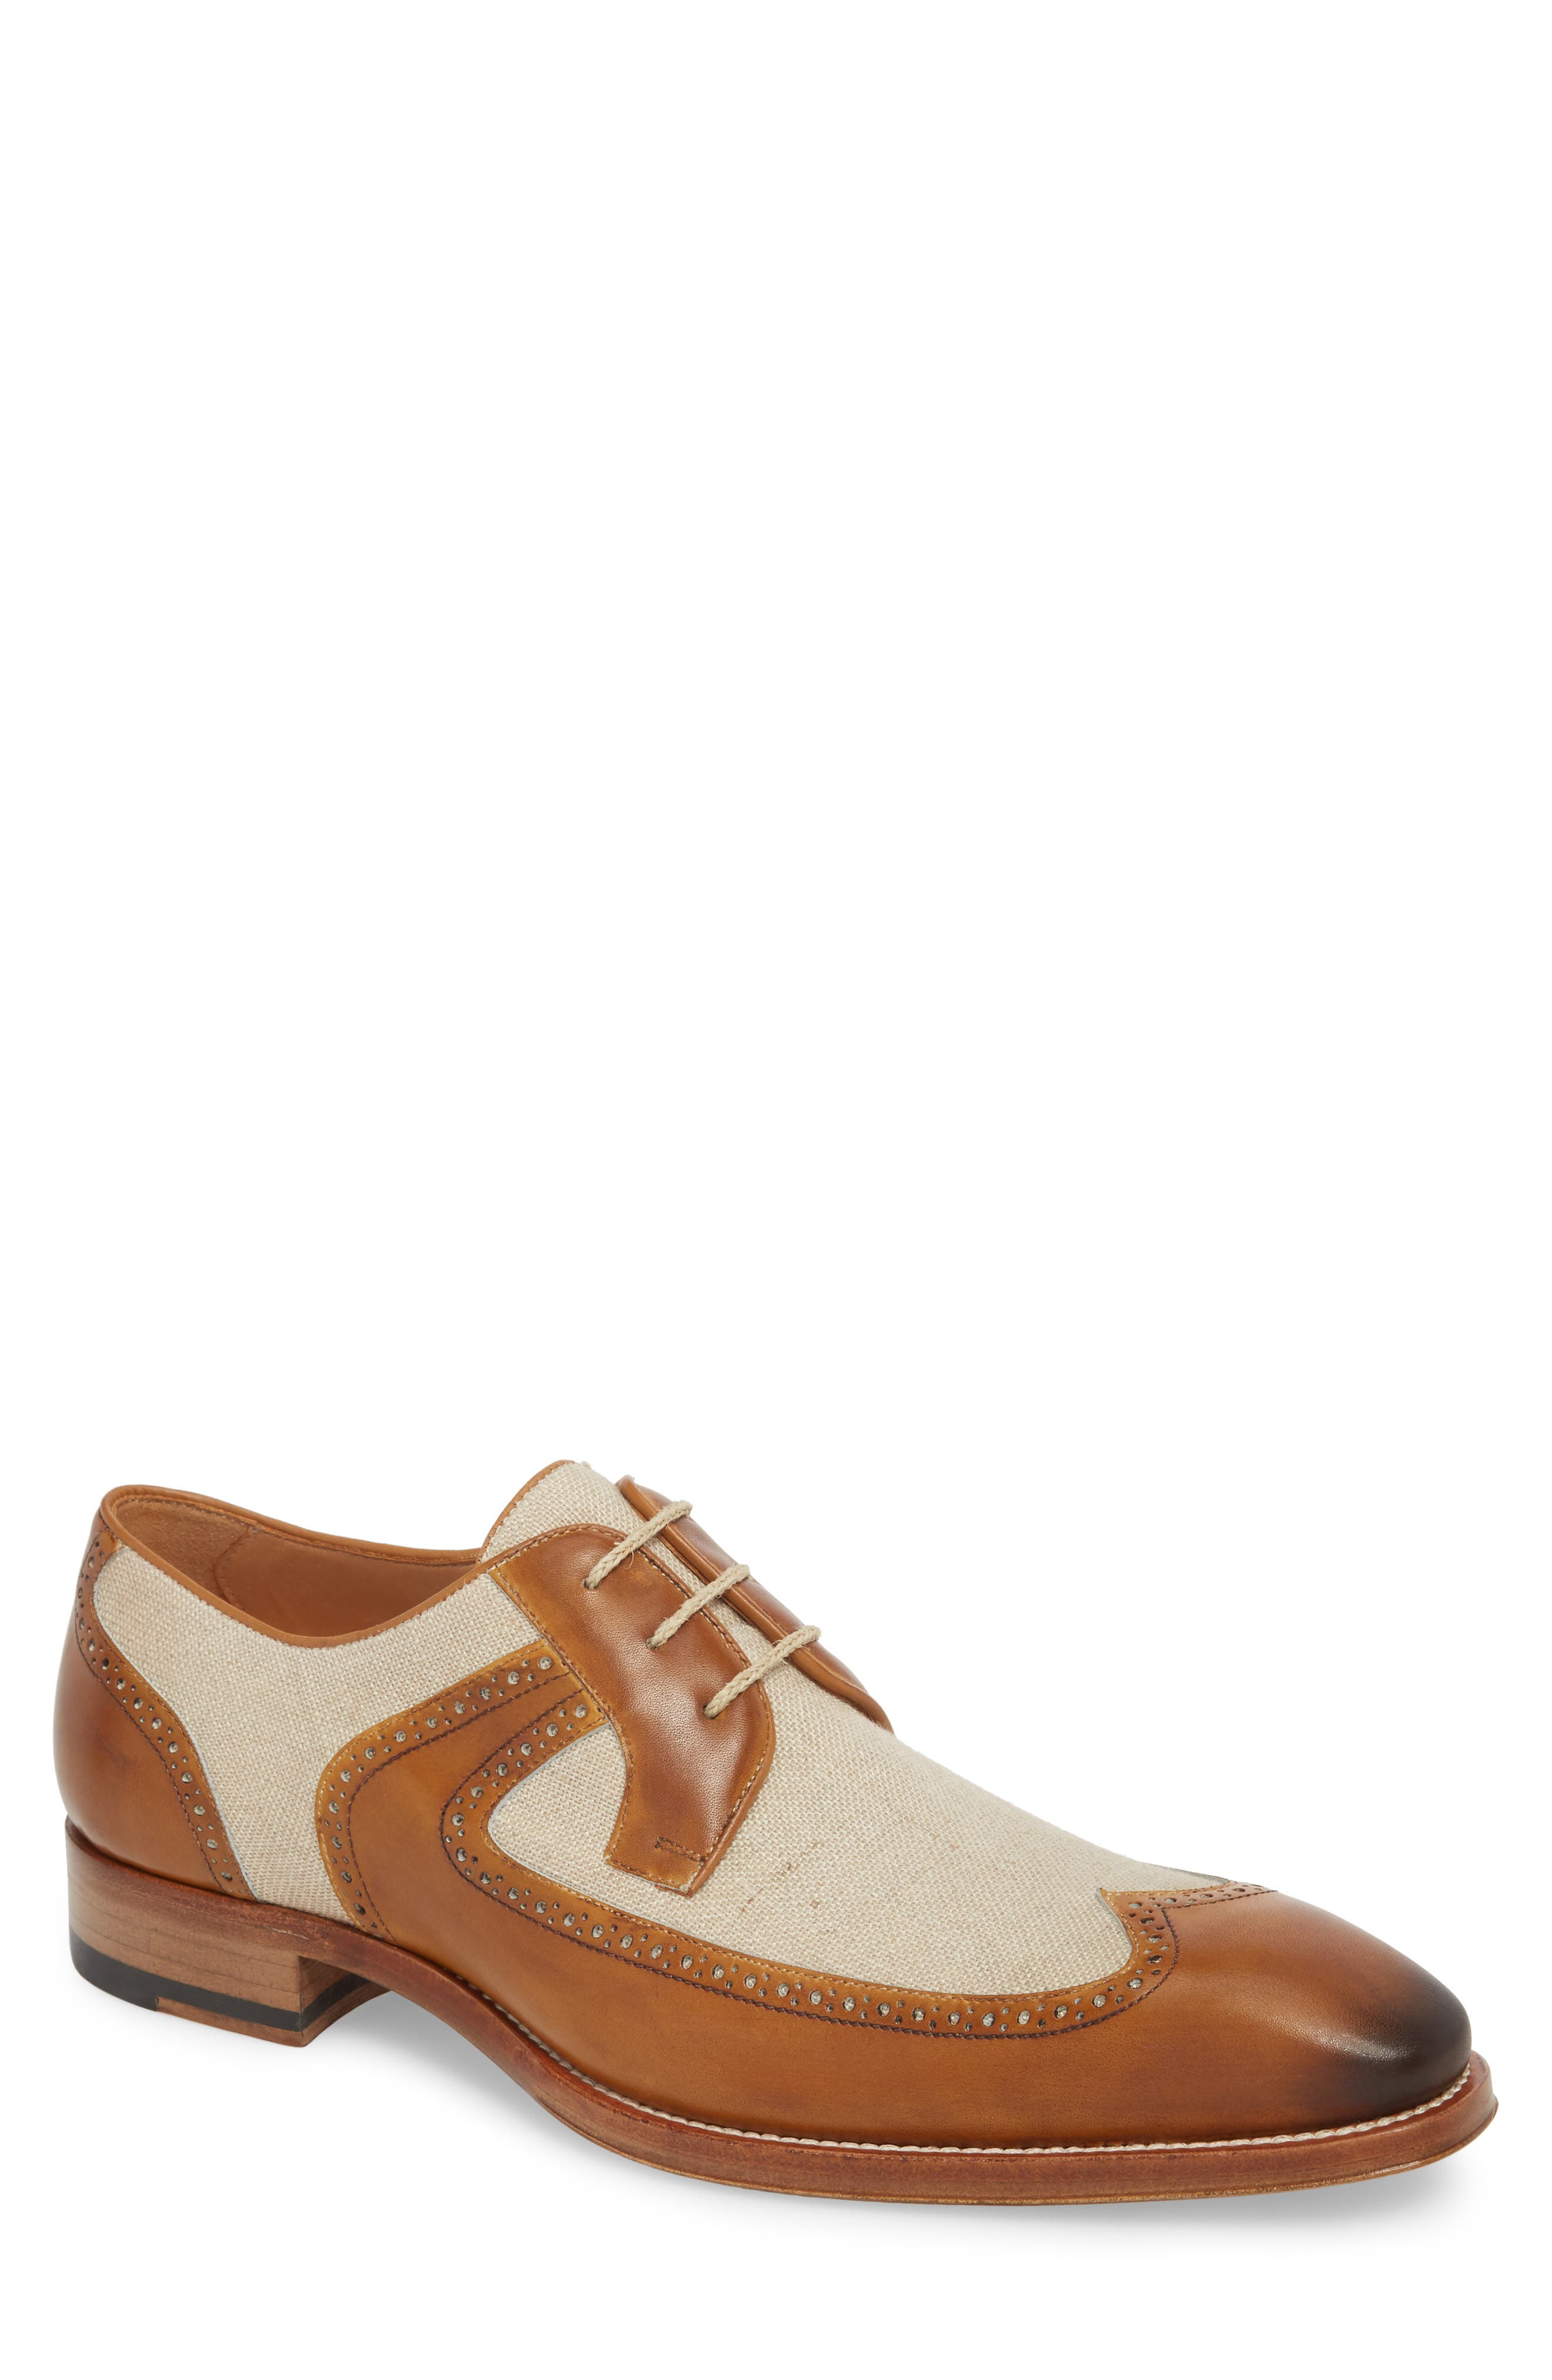 Teseo Spectator Wingtip Derby,                         Main,                         color, Honey/ Bone Leather